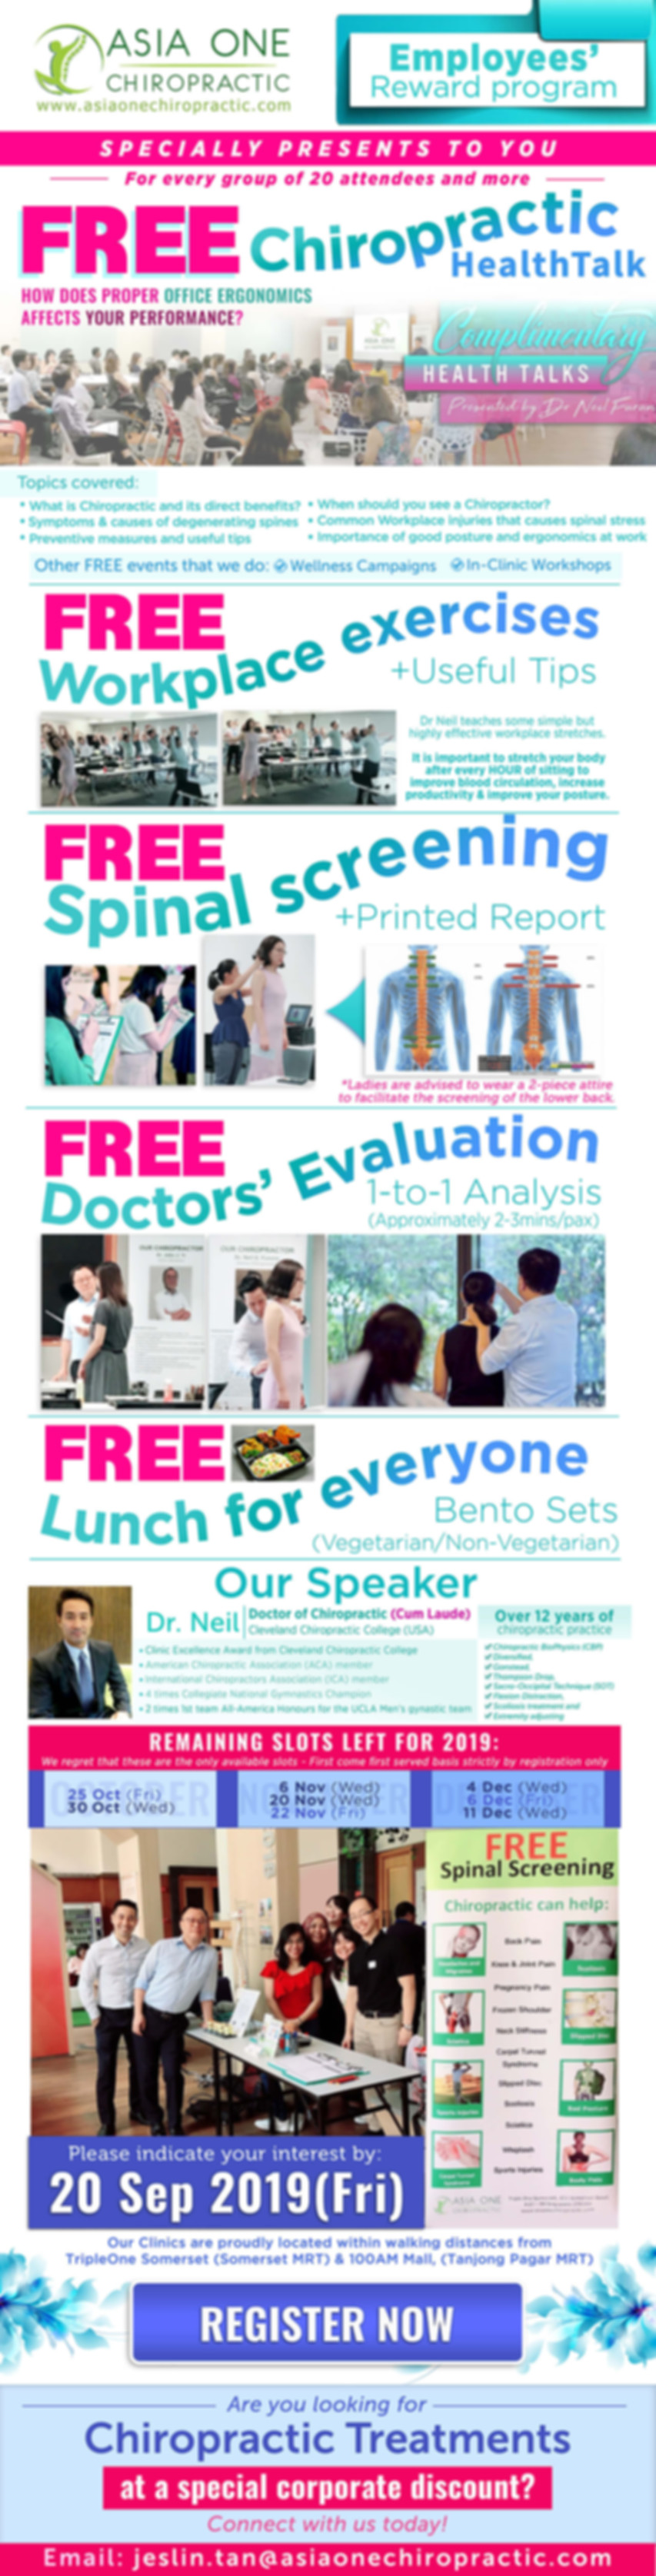 EDM - FREE Chiropractic HealthTalk - By